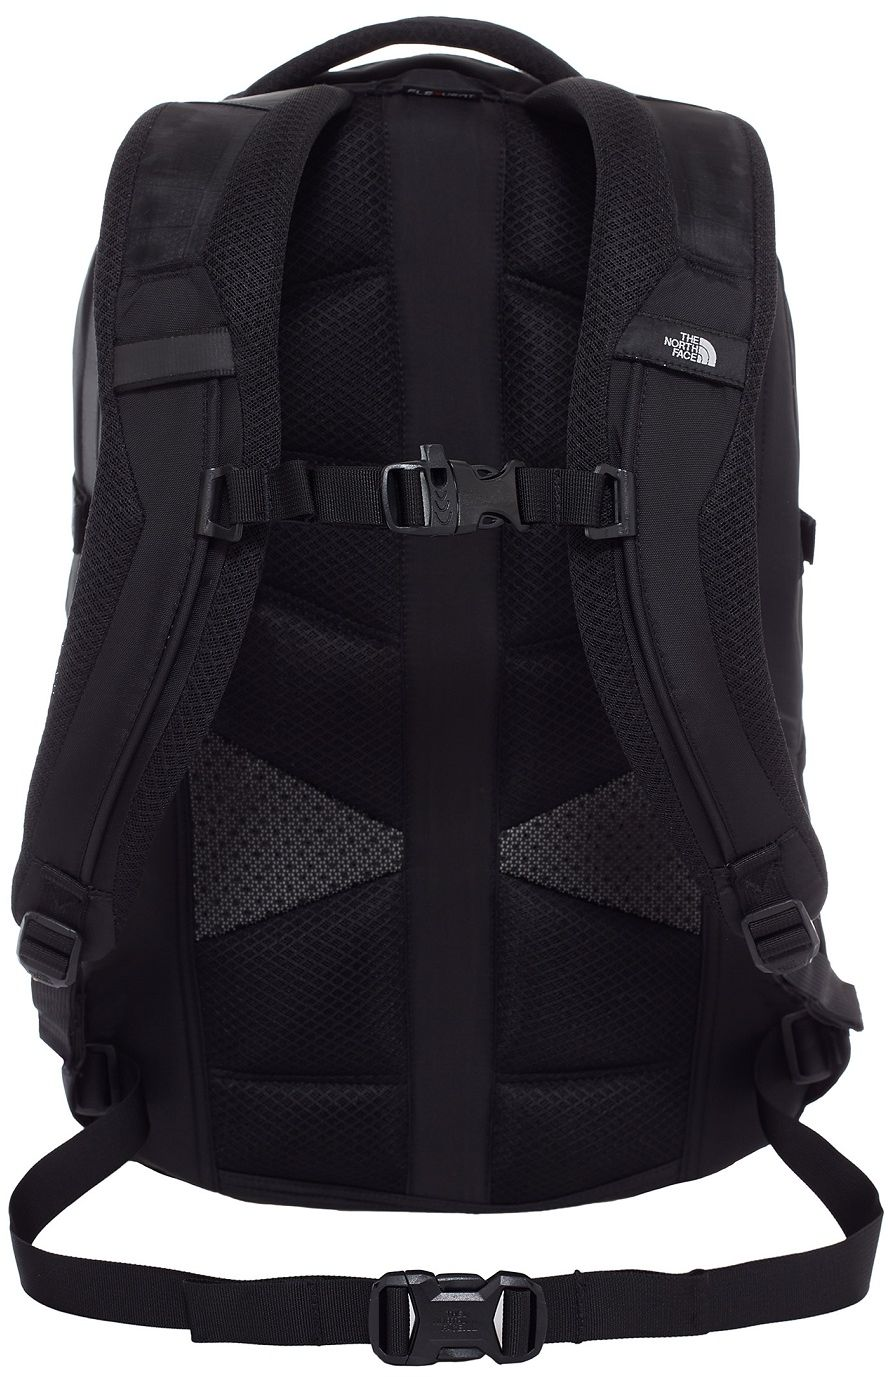 The-North-Face-Tnf-Borealis-28-L-cartable-randonnee-Sac-a-dos-Laptopfach-NEUF miniature 3